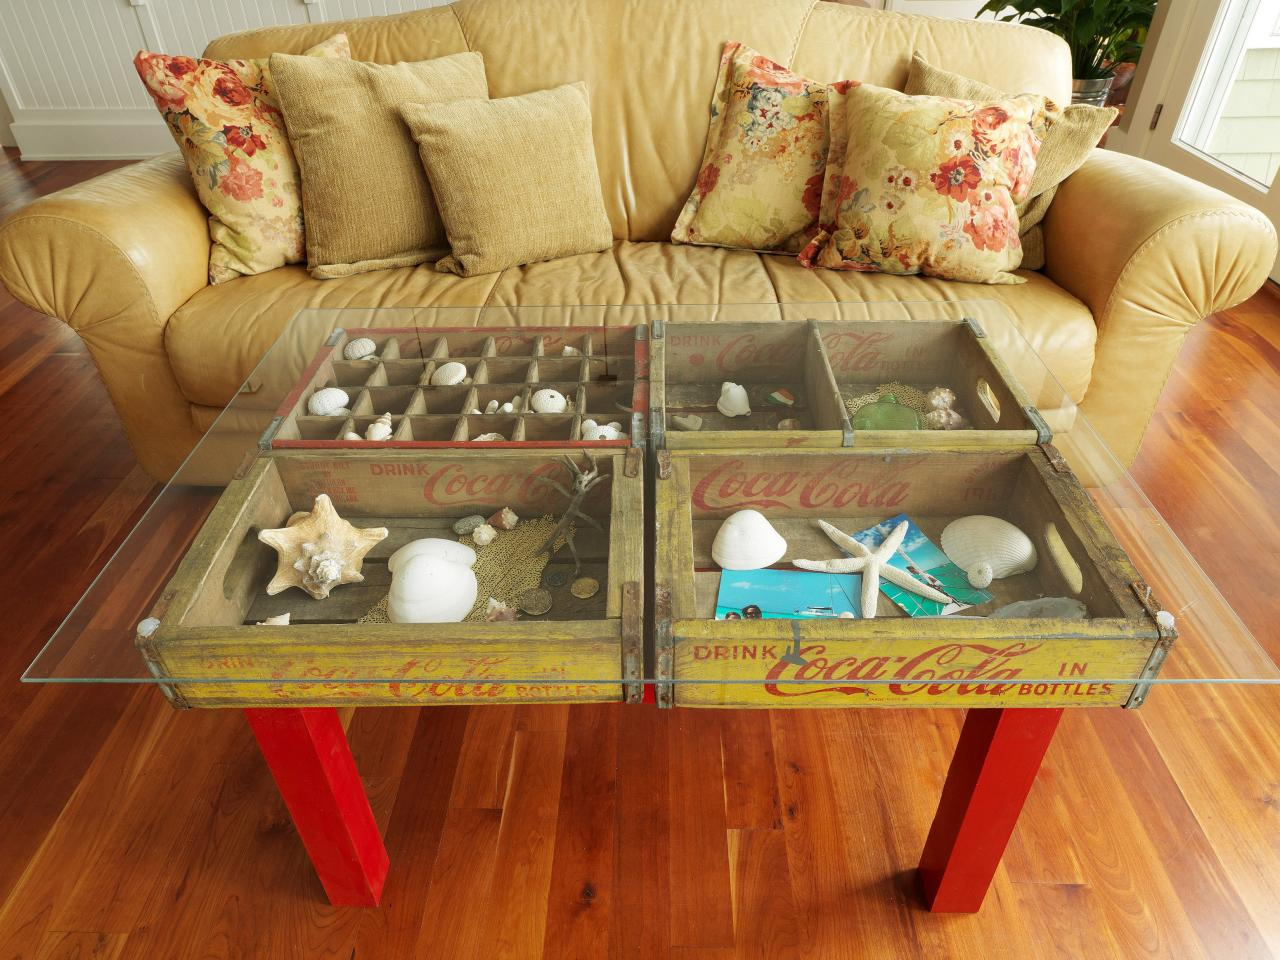 7 Soda Crates into Coffee Table